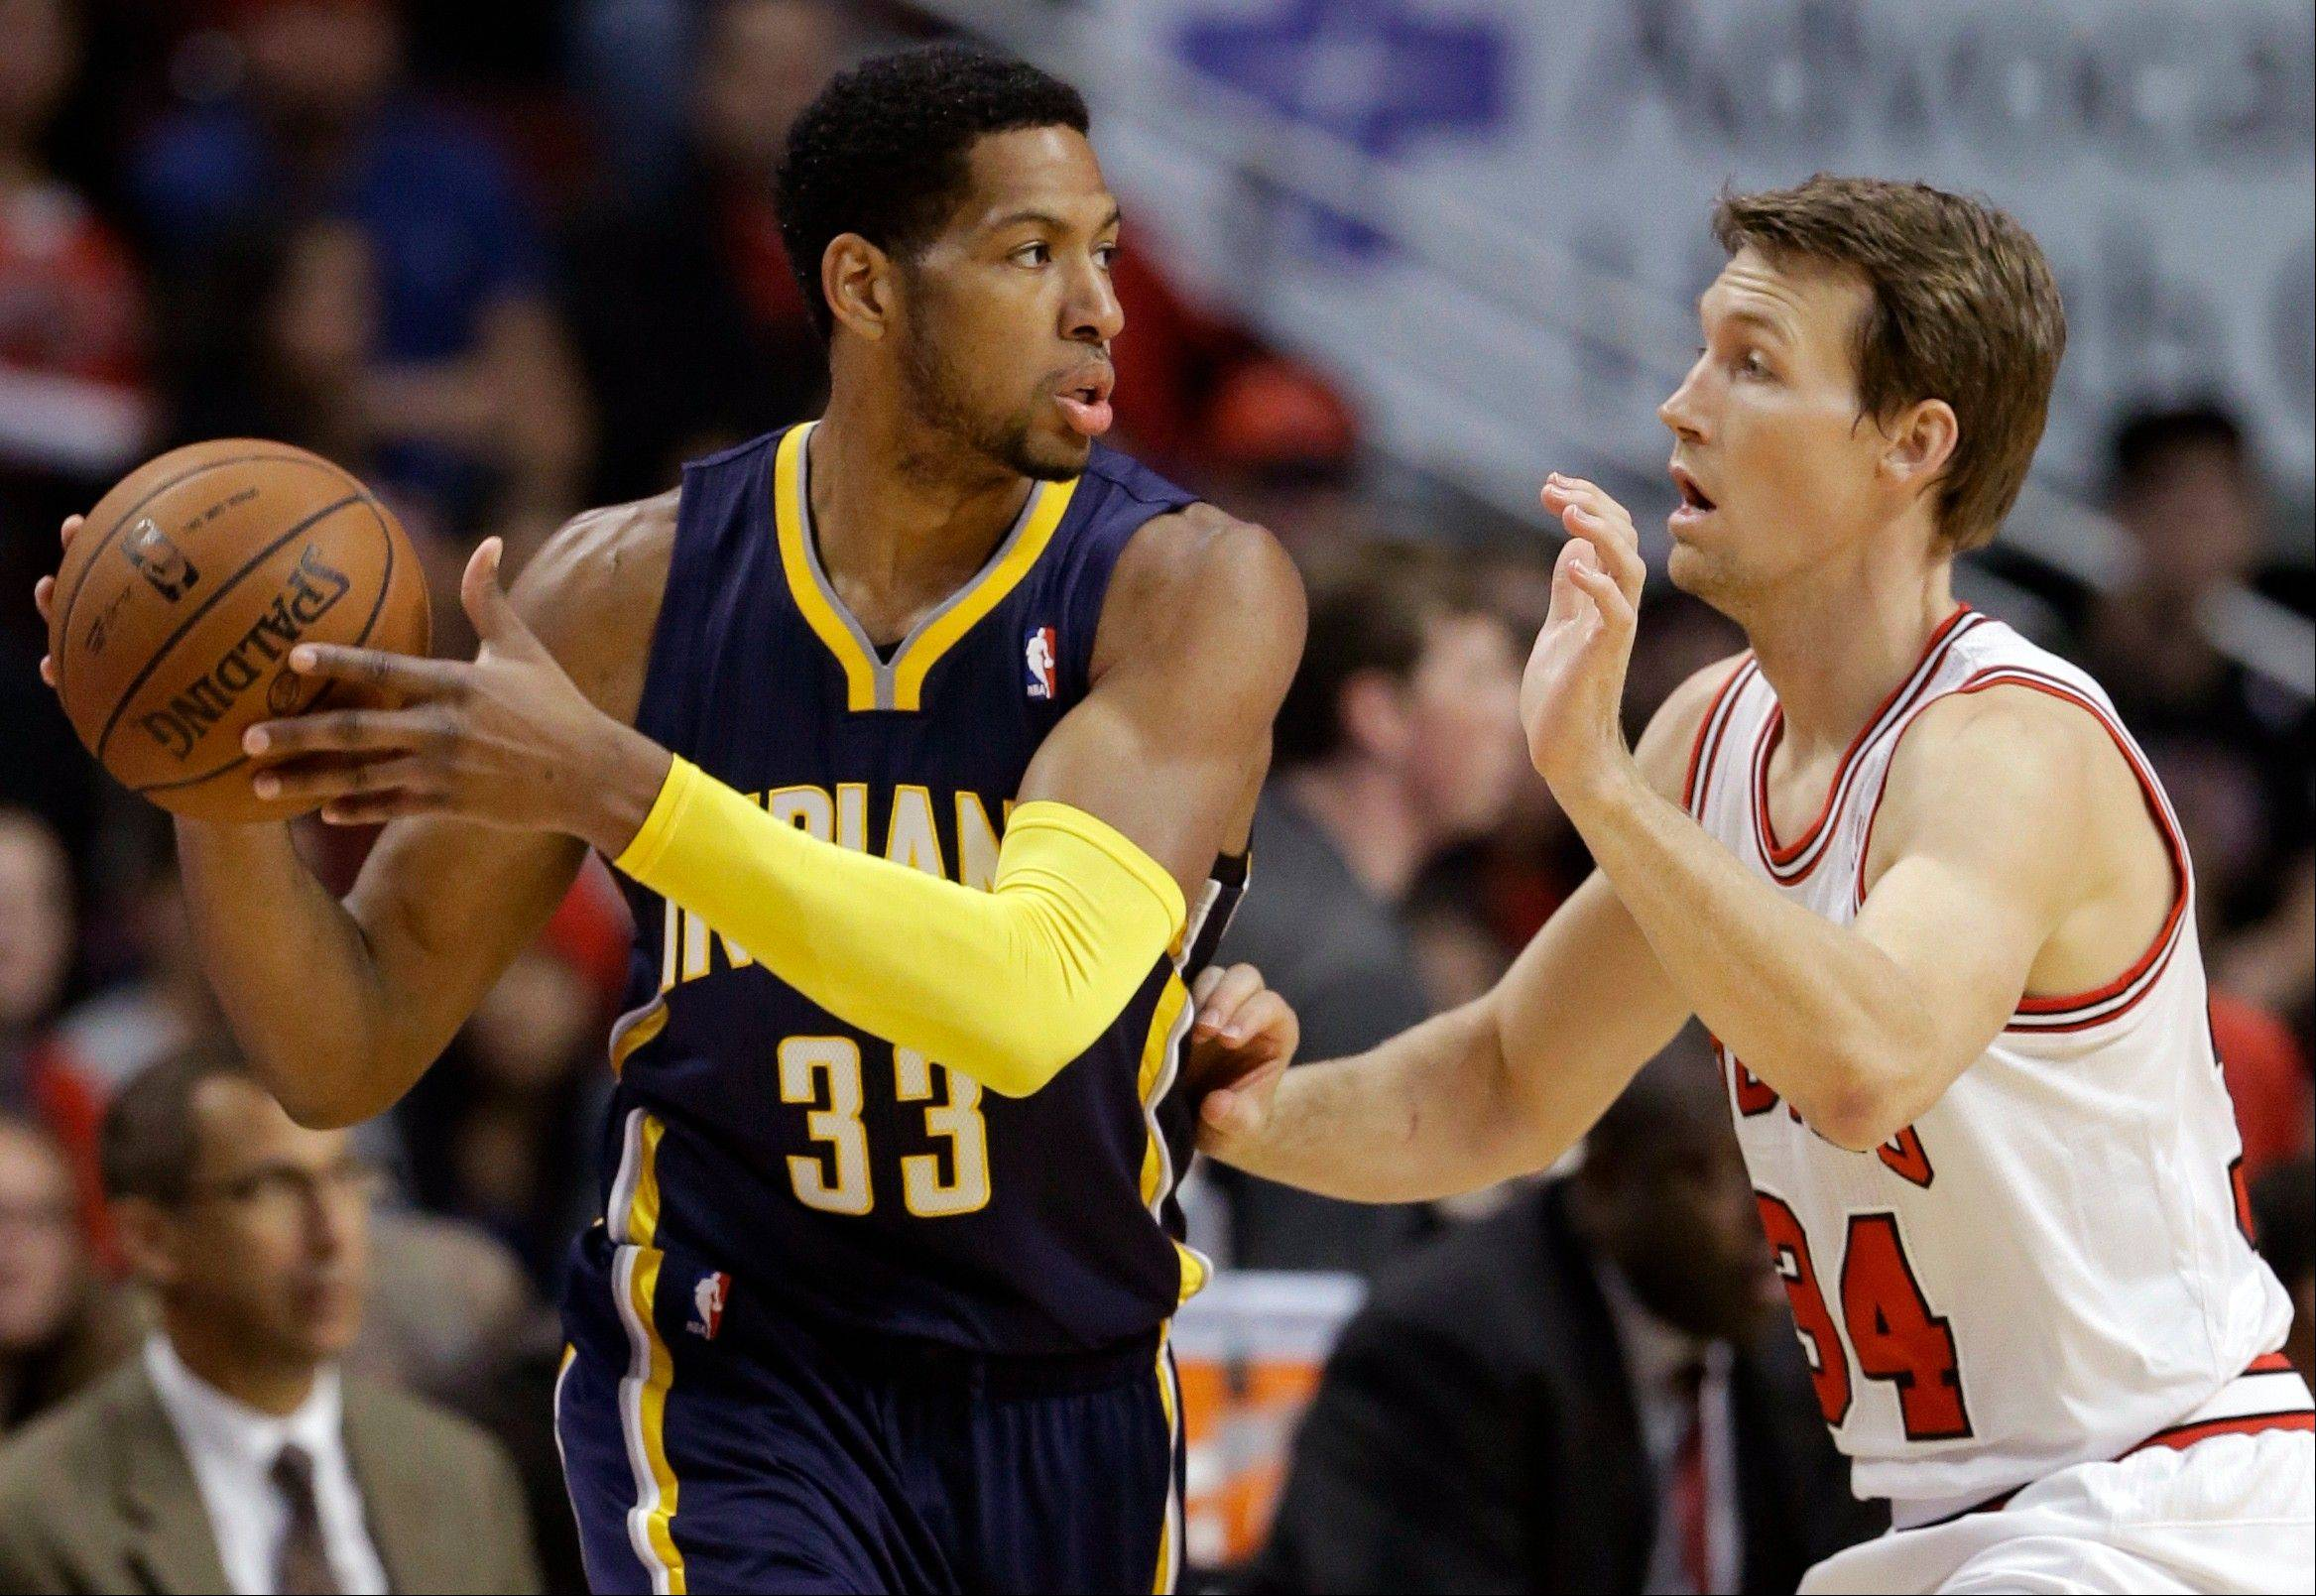 Indiana Pacers forward Danny Granger (33) looks to a pass as Chicago Bulls guard Mike Dunleavy (34) guards during the first half of an NBA preseason basketball game in Chicago on Friday, Oct. 18, 2013.